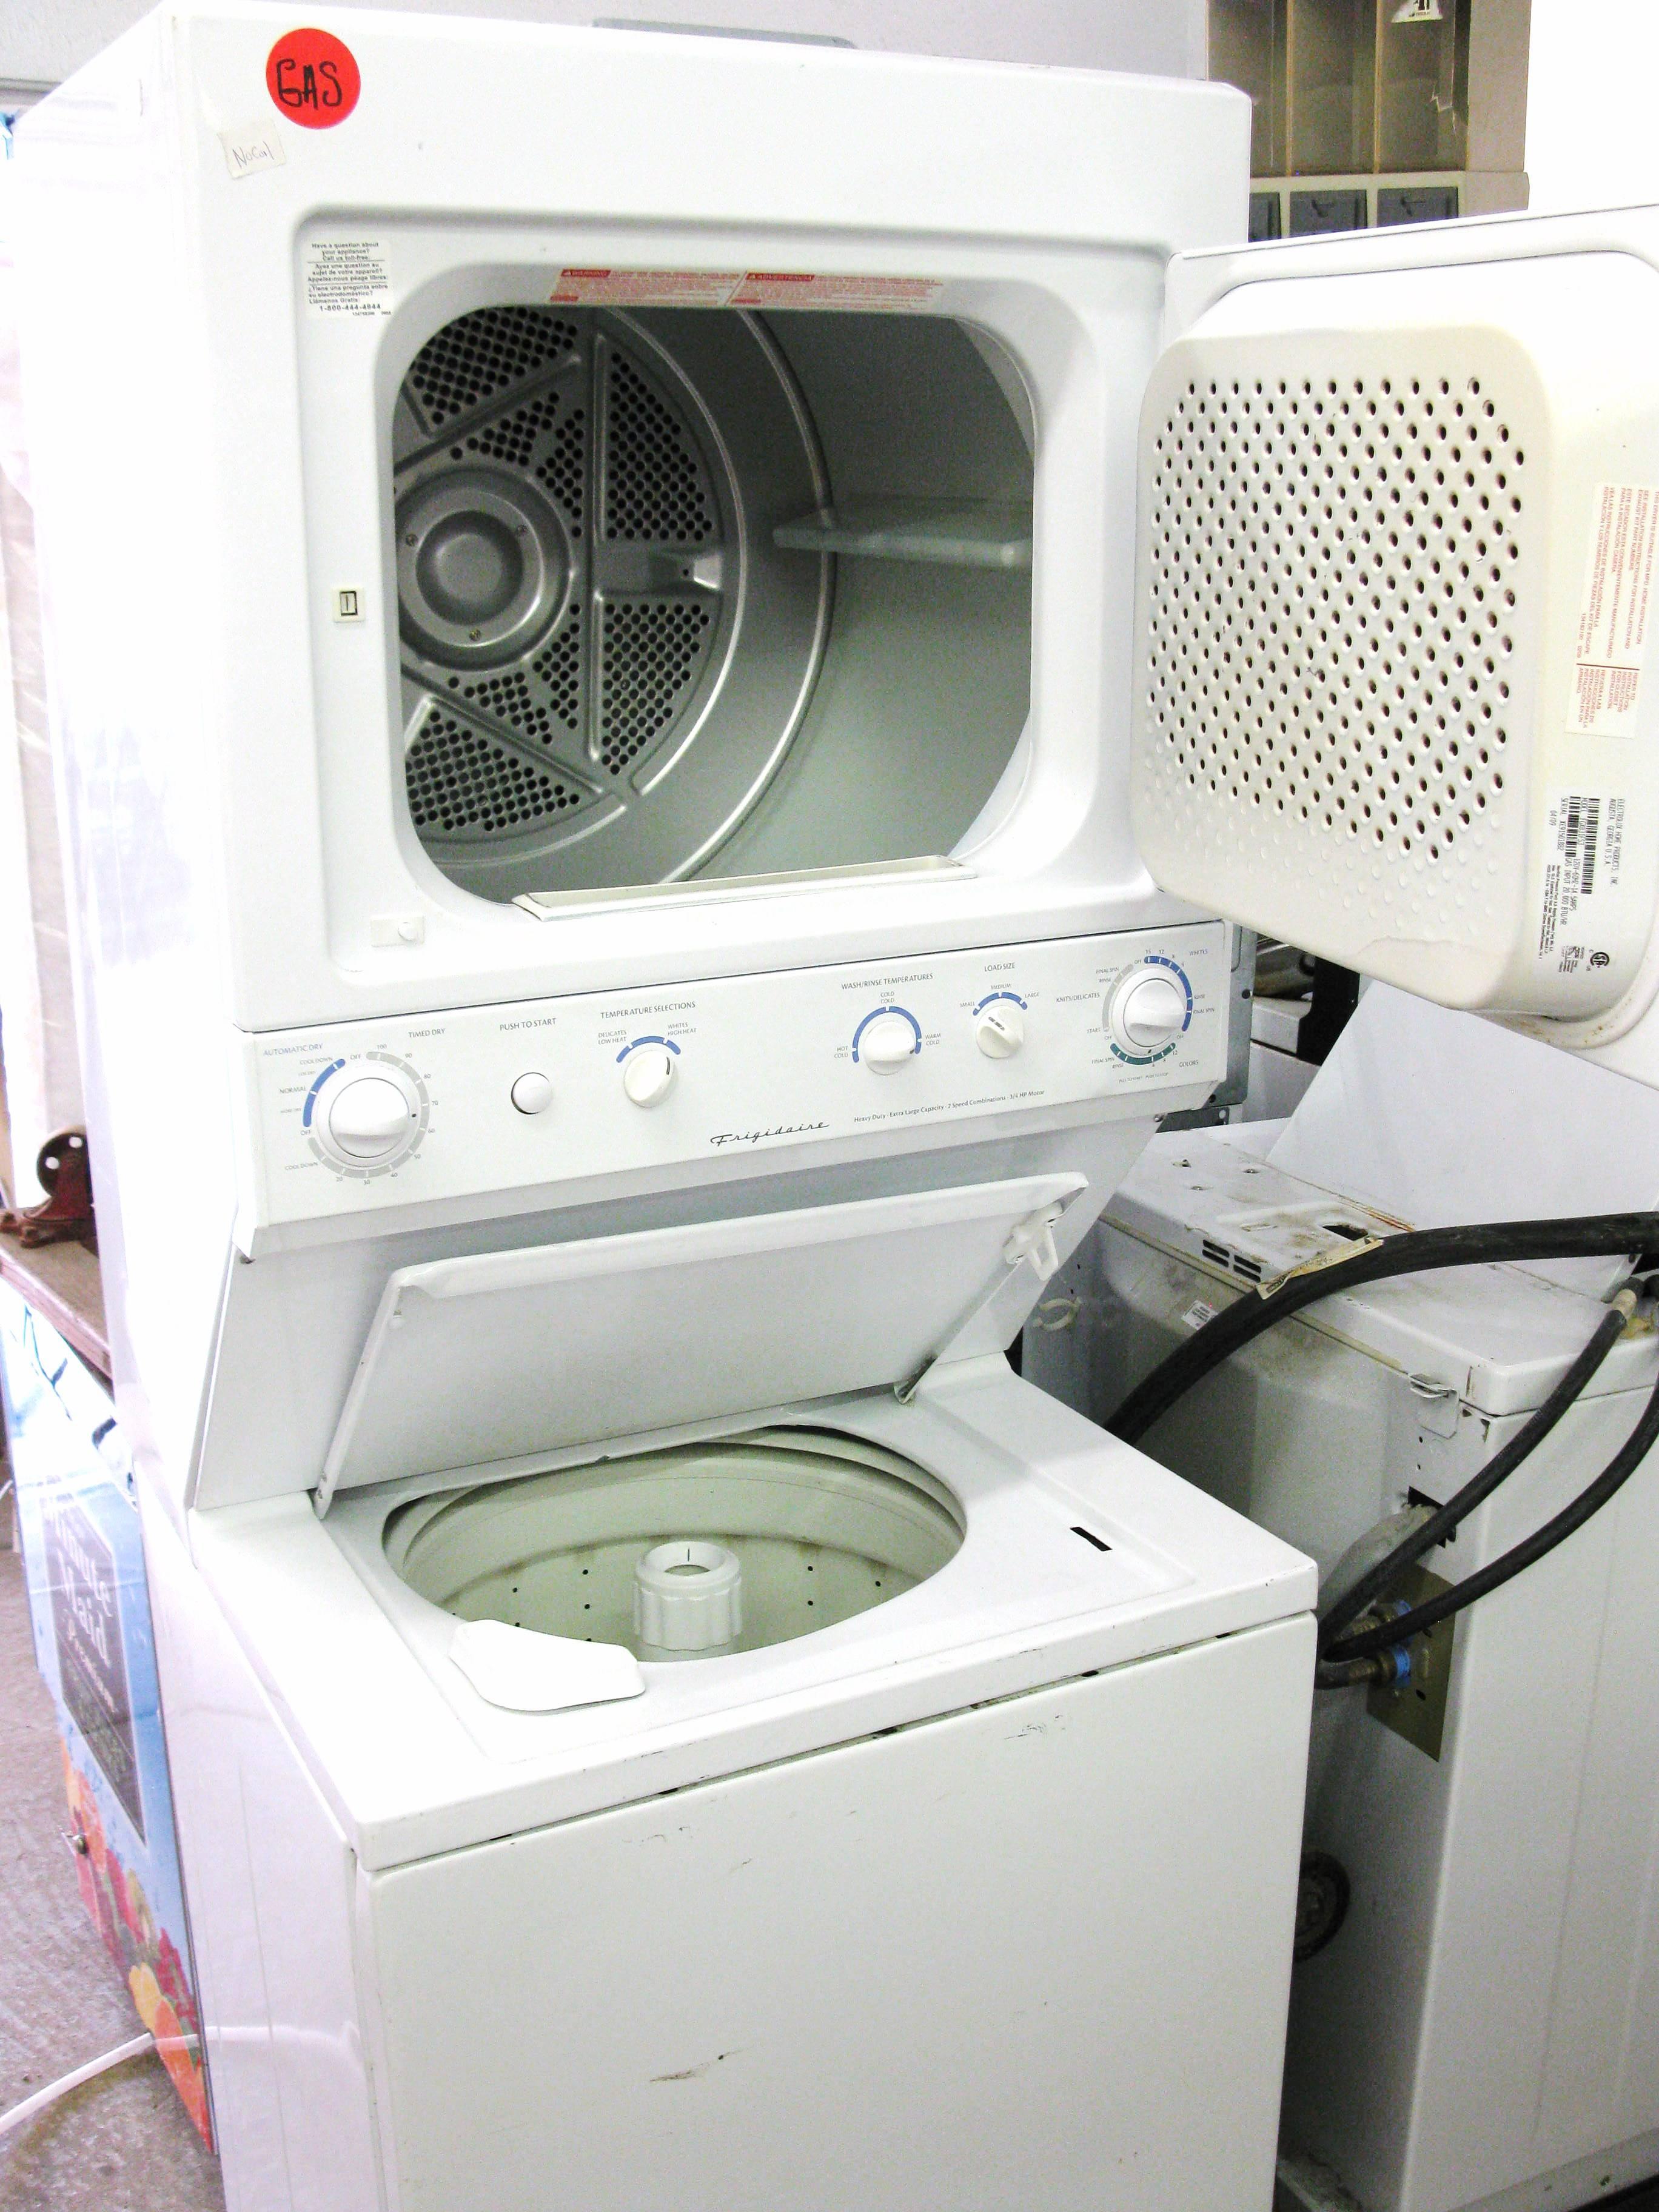 Installation Procedure For A New Dryer